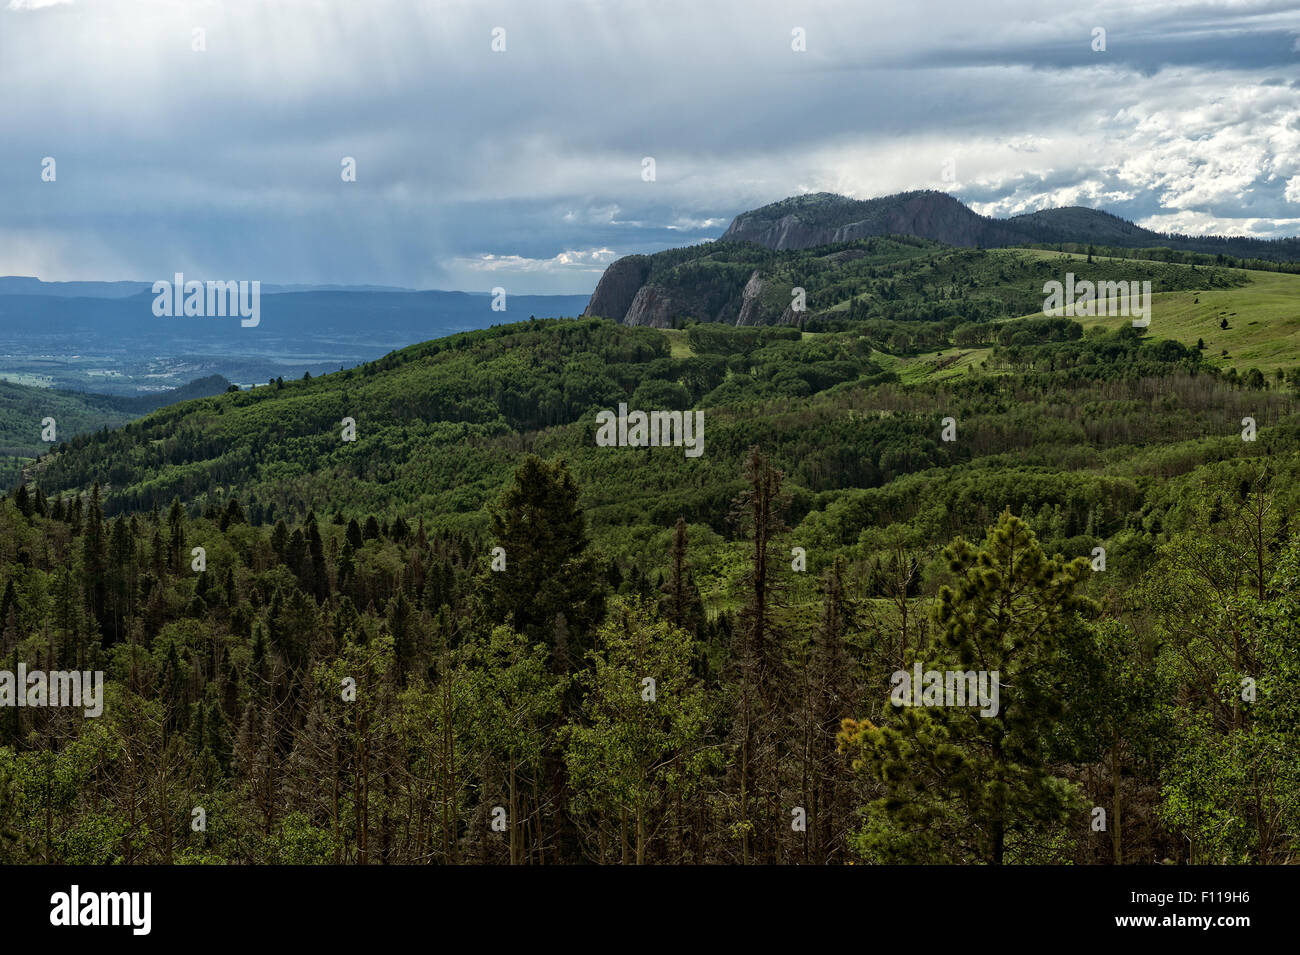 New mexico rio arriba county abiquiu - The Brazos Cliffs In Northern Rio Arriba County New Mexico As Seen From A